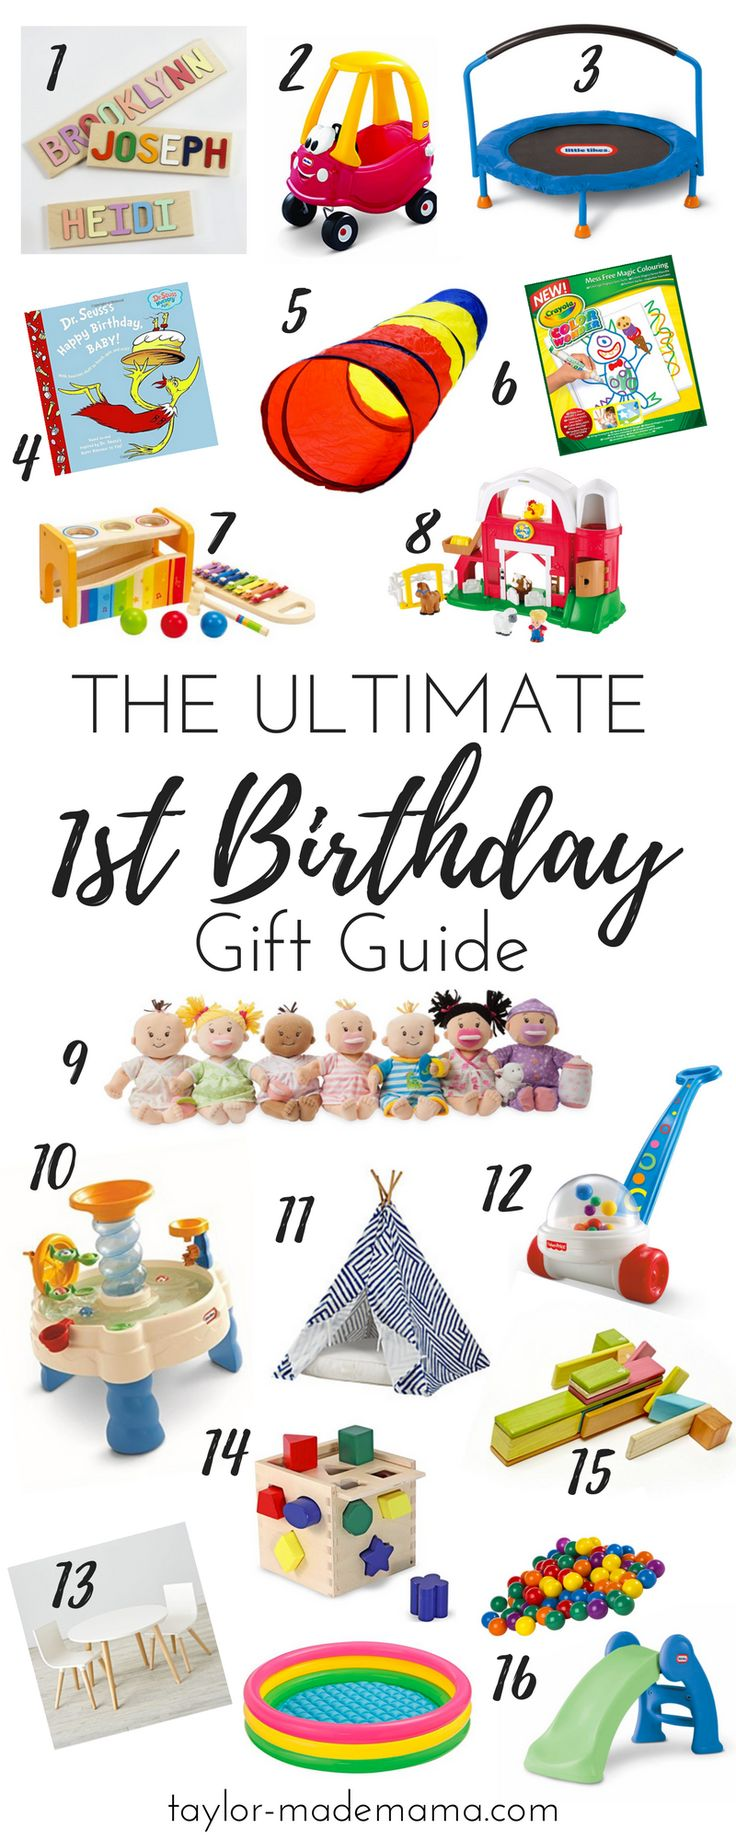 The top toys to buy for a one year old. Your Ultimate 1st Birthday gift guide - for boys or girls!